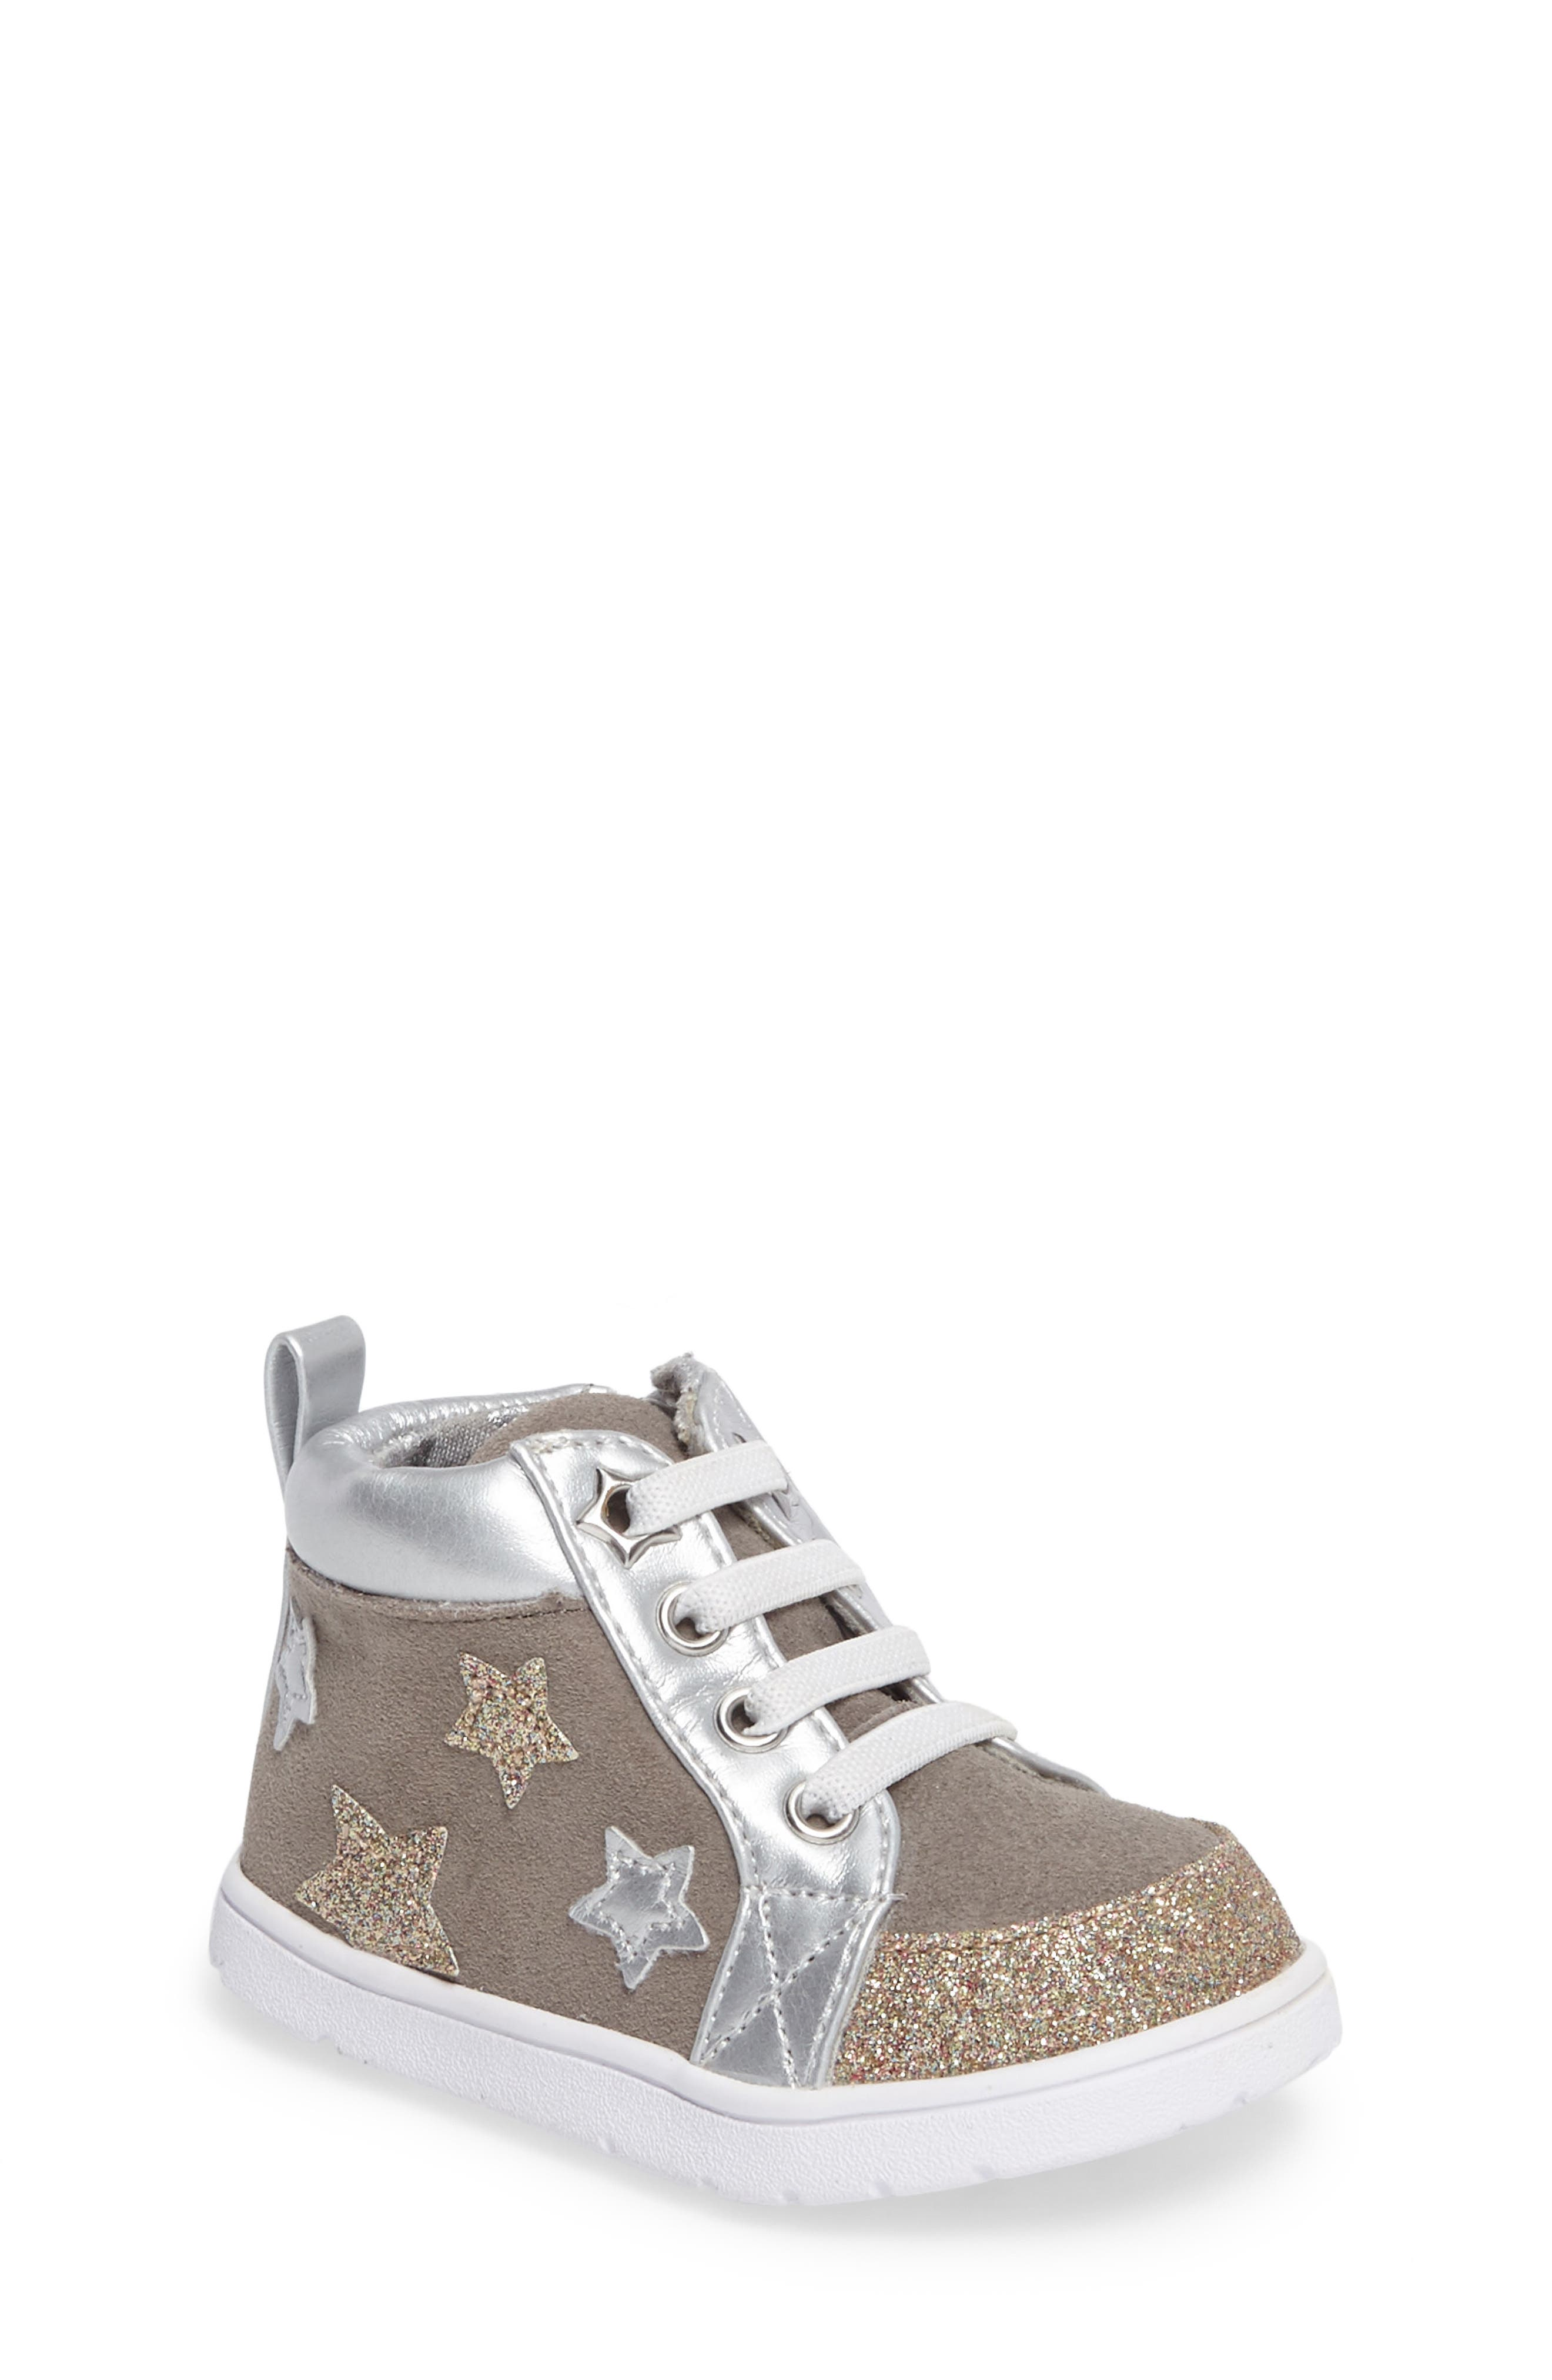 Diantha Star Appliqué High Top Sneaker,                         Main,                         color, Grey Leather